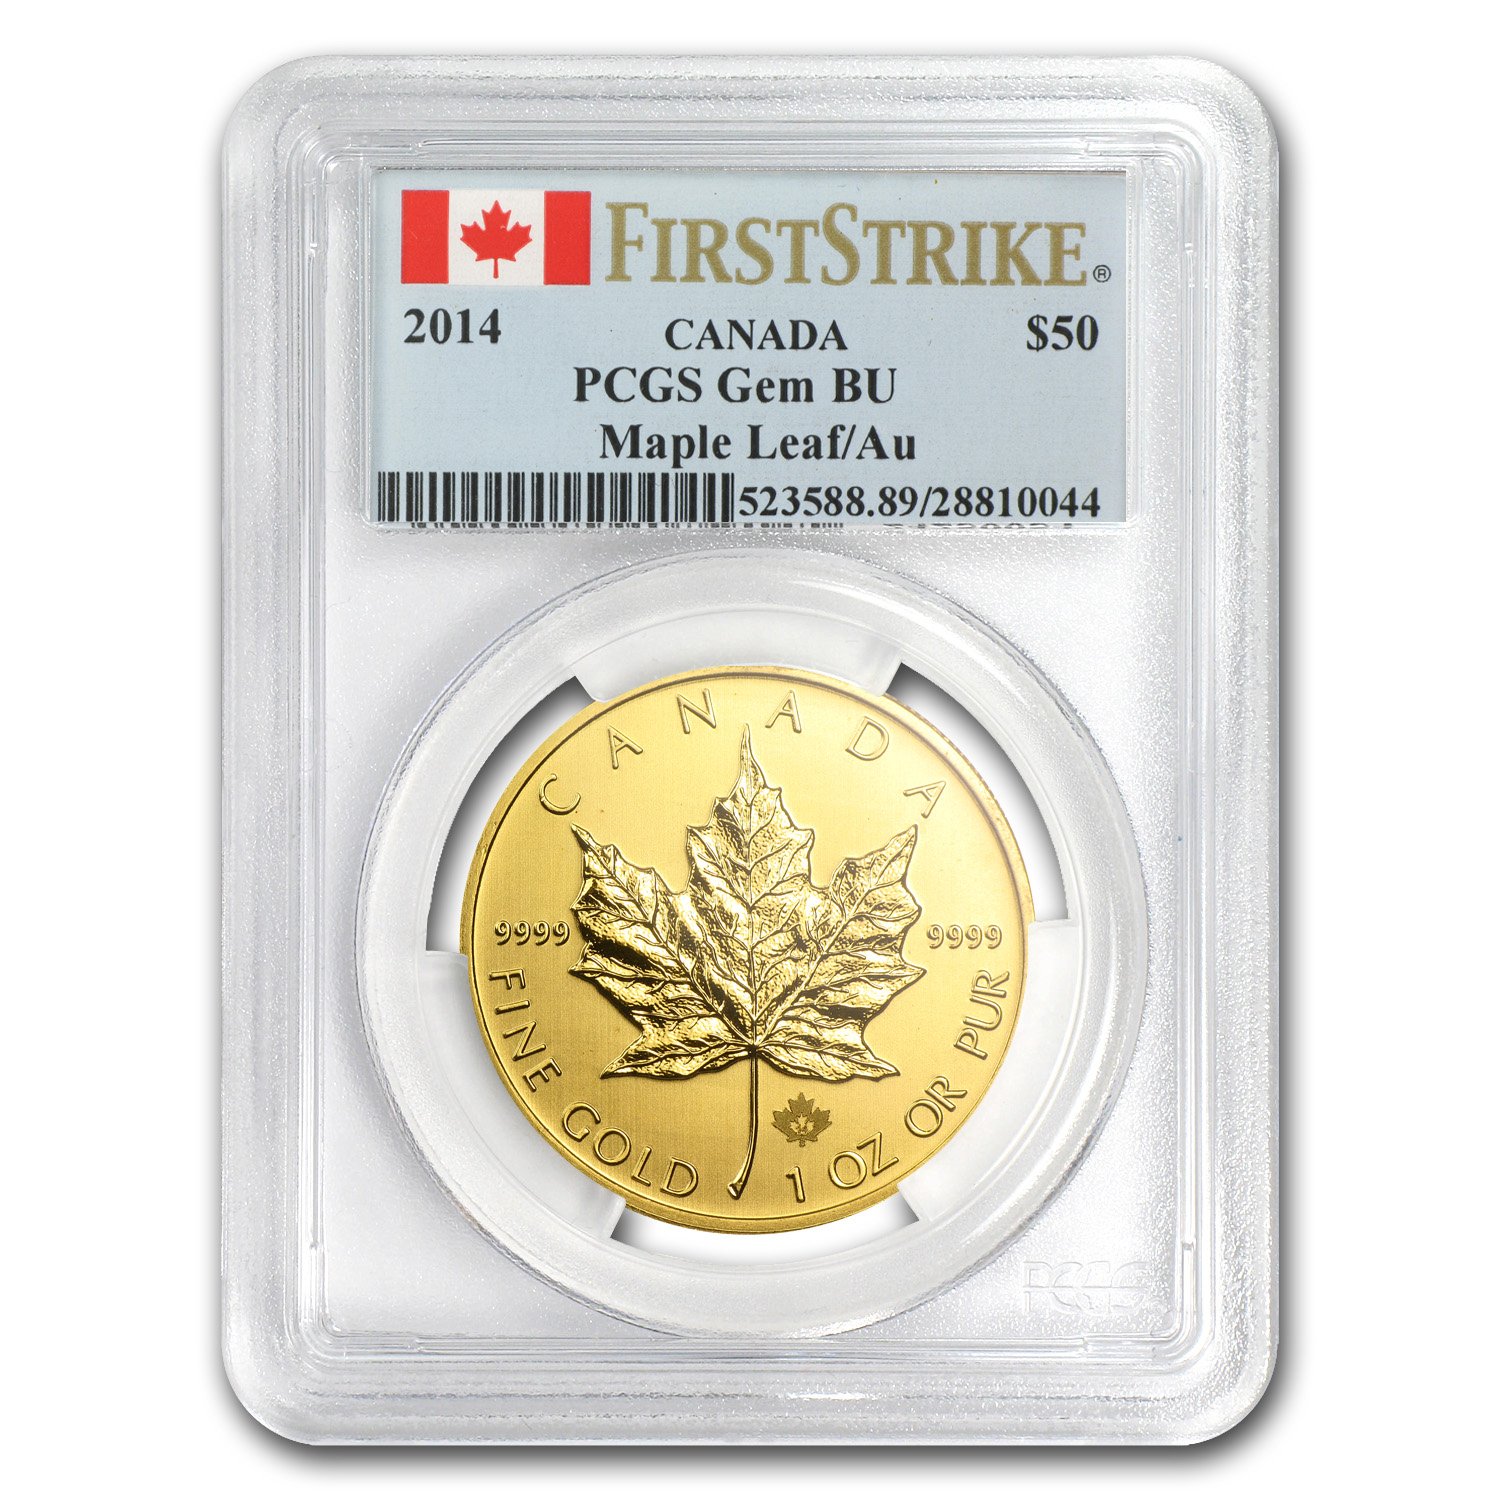 2014 1 oz Gold Canadian Maple Leaf - Gem BU PCGS First Strike